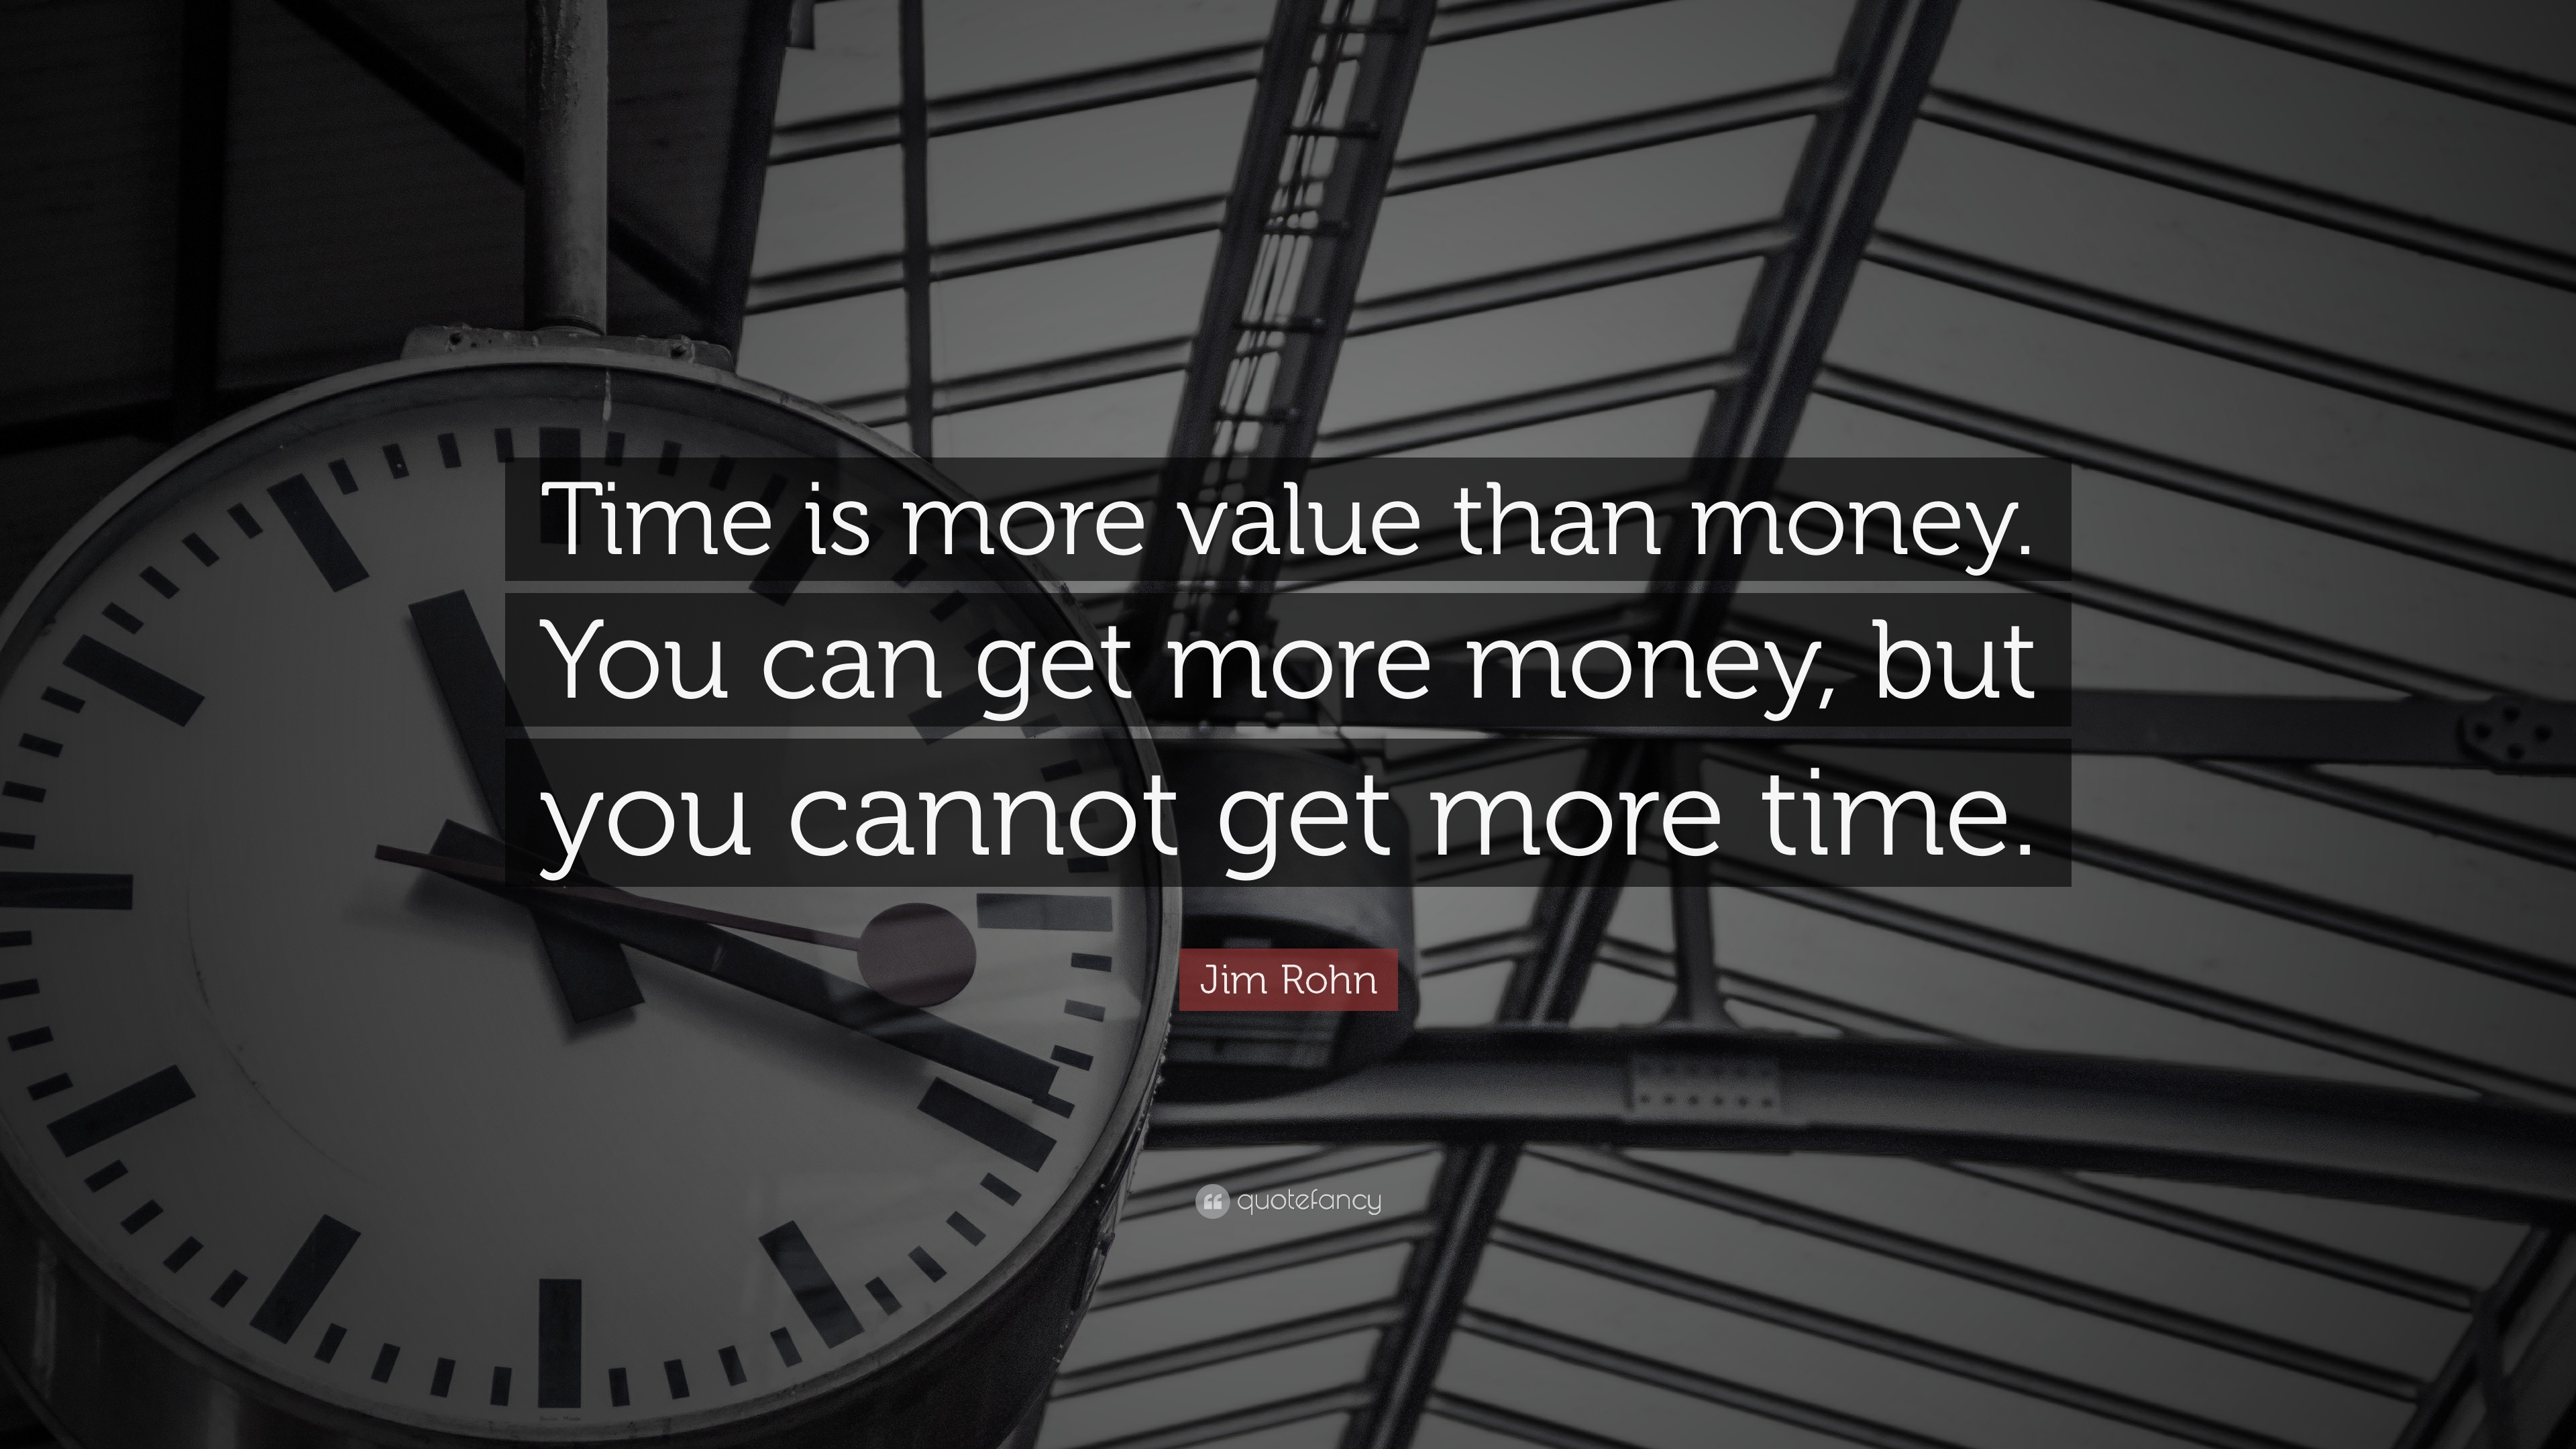 Superior Time Quotes: U201cTime Is More Value Than Money. You Can Get More Money